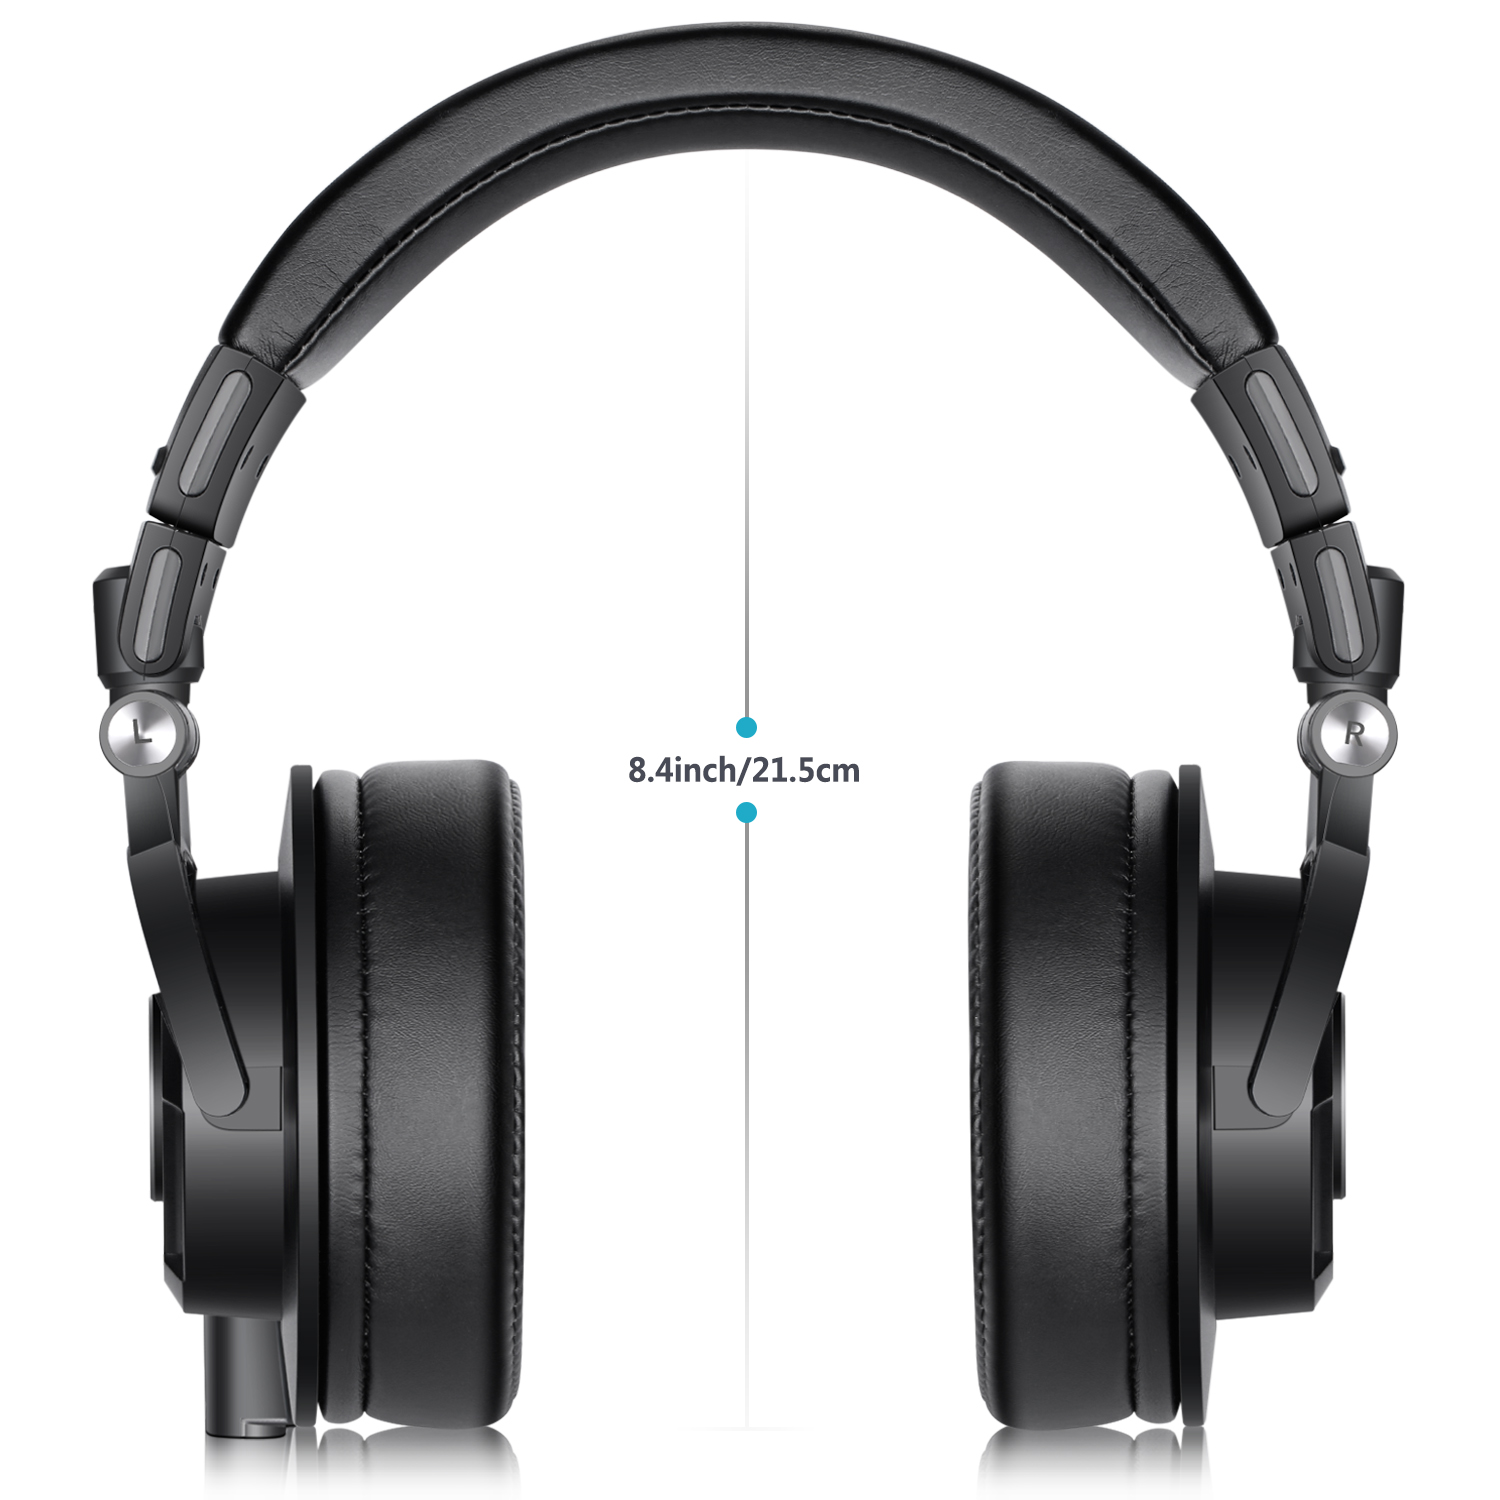 neewer nw 9000 studio monitor headphones rotatable headset for pc cell phones tv 191073021068 ebay. Black Bedroom Furniture Sets. Home Design Ideas